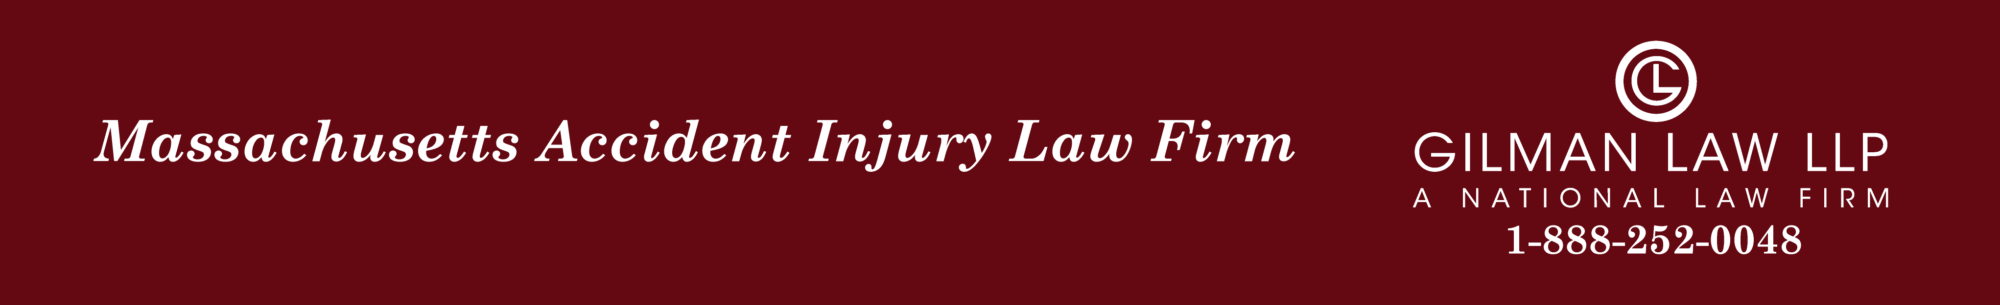 Massachusetts Accident Injury Law Firm